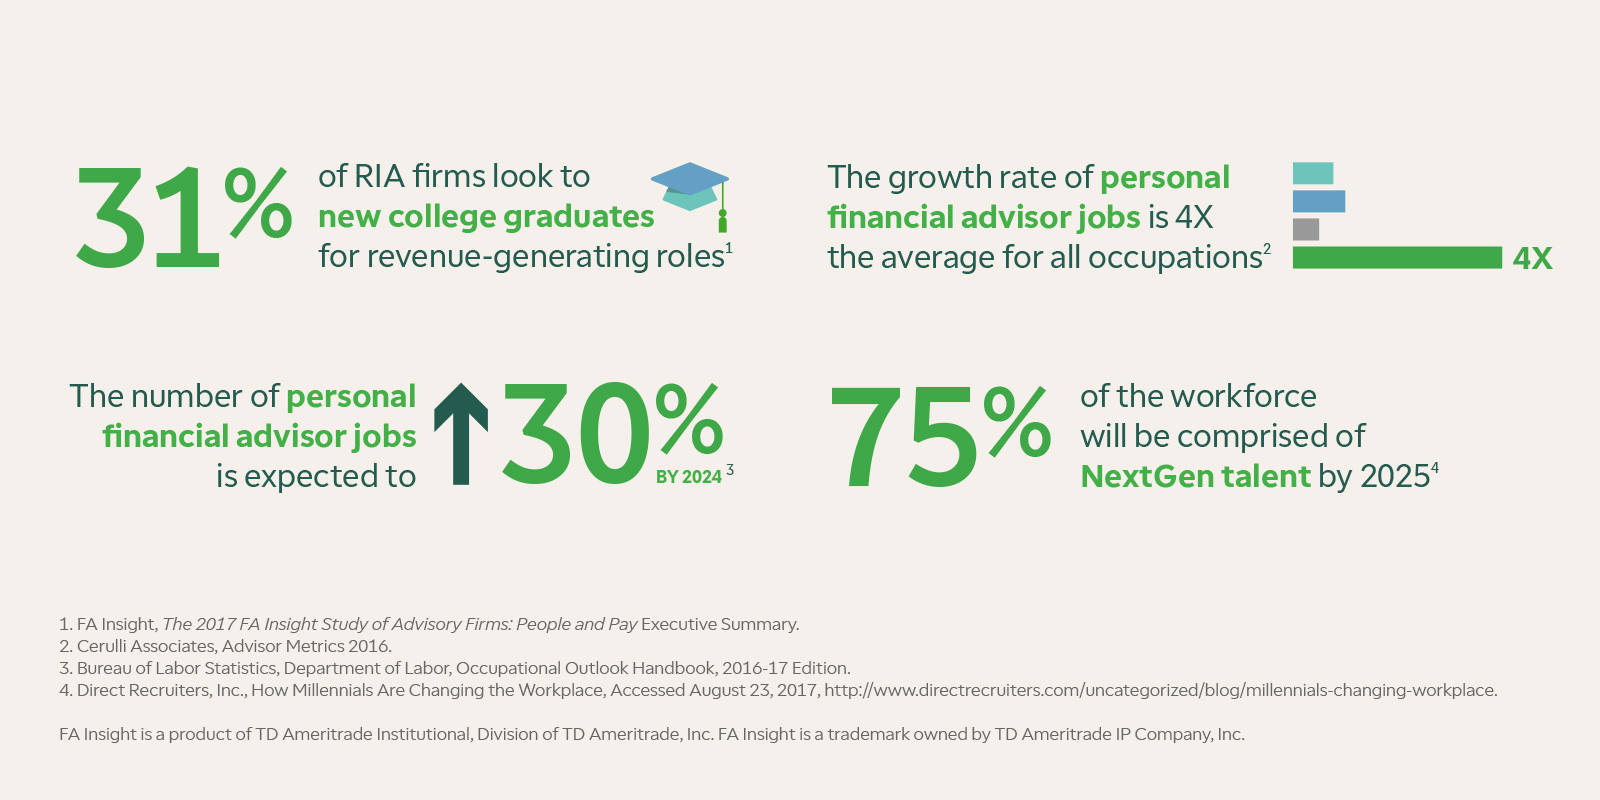 31% of RIA firms look to new college grads for revenue-generating roles; The growth rate of personal financial advisor jobs is 4X the average for all occupations; The number of personal financial advisor jobs is expected to increase to 30% by 2024; 75% of the workforce will be comprised of NextGen talent by 2025 | Sources: 1. FA Insight, The 2017 FA Insight Study of Adivsory Firms: People and Pay Executive Summary; 2. Cerulli Associates, Advisor Metrics 2016.; 3. Bureau of Labor Statistics, Dept. of Labor, Occupational Outlook Handbook, 2016-17 Edition.; 4. Direct Recruiters, Inc., How Millenials Are Changing the Workplace, Accessed August 23, 2017, http://www.directrecruiters.com/uncategorized/blog/millenials-changing-workplace.; FA Insight is a product of TD Ameritrade Institutional, Division of TD Ameritrade, Inc. FA Insight is a trademark owned by TDAmeritrade IP Company, Inc.